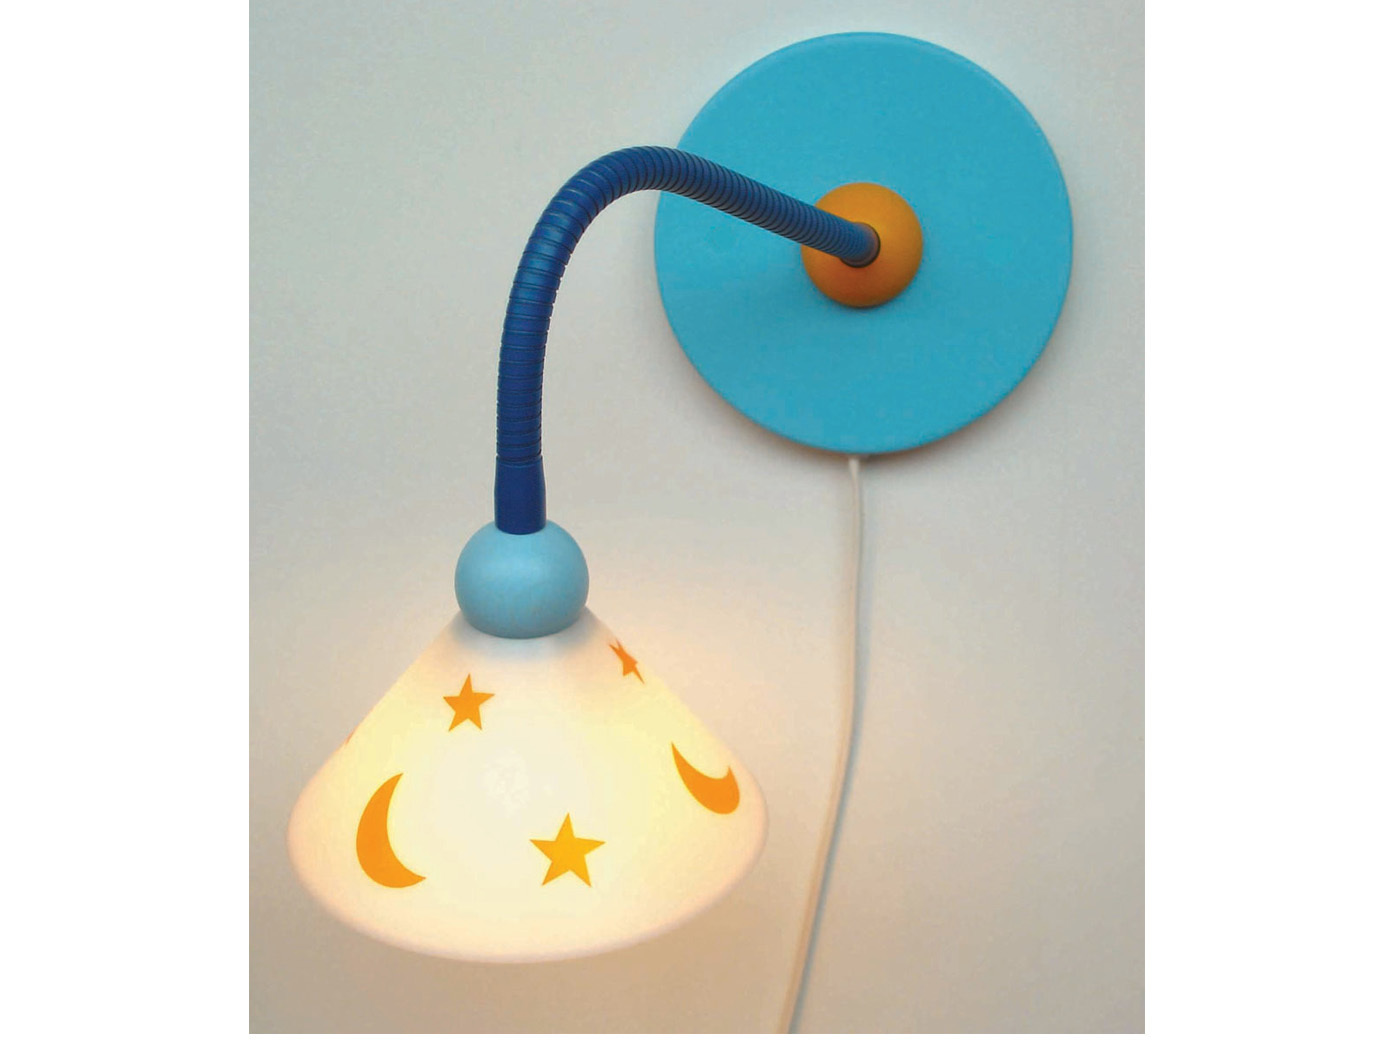 led wandlampe kinderzimmer jungen m dchen mond sterne kinderlampe flexrohr ebay. Black Bedroom Furniture Sets. Home Design Ideas